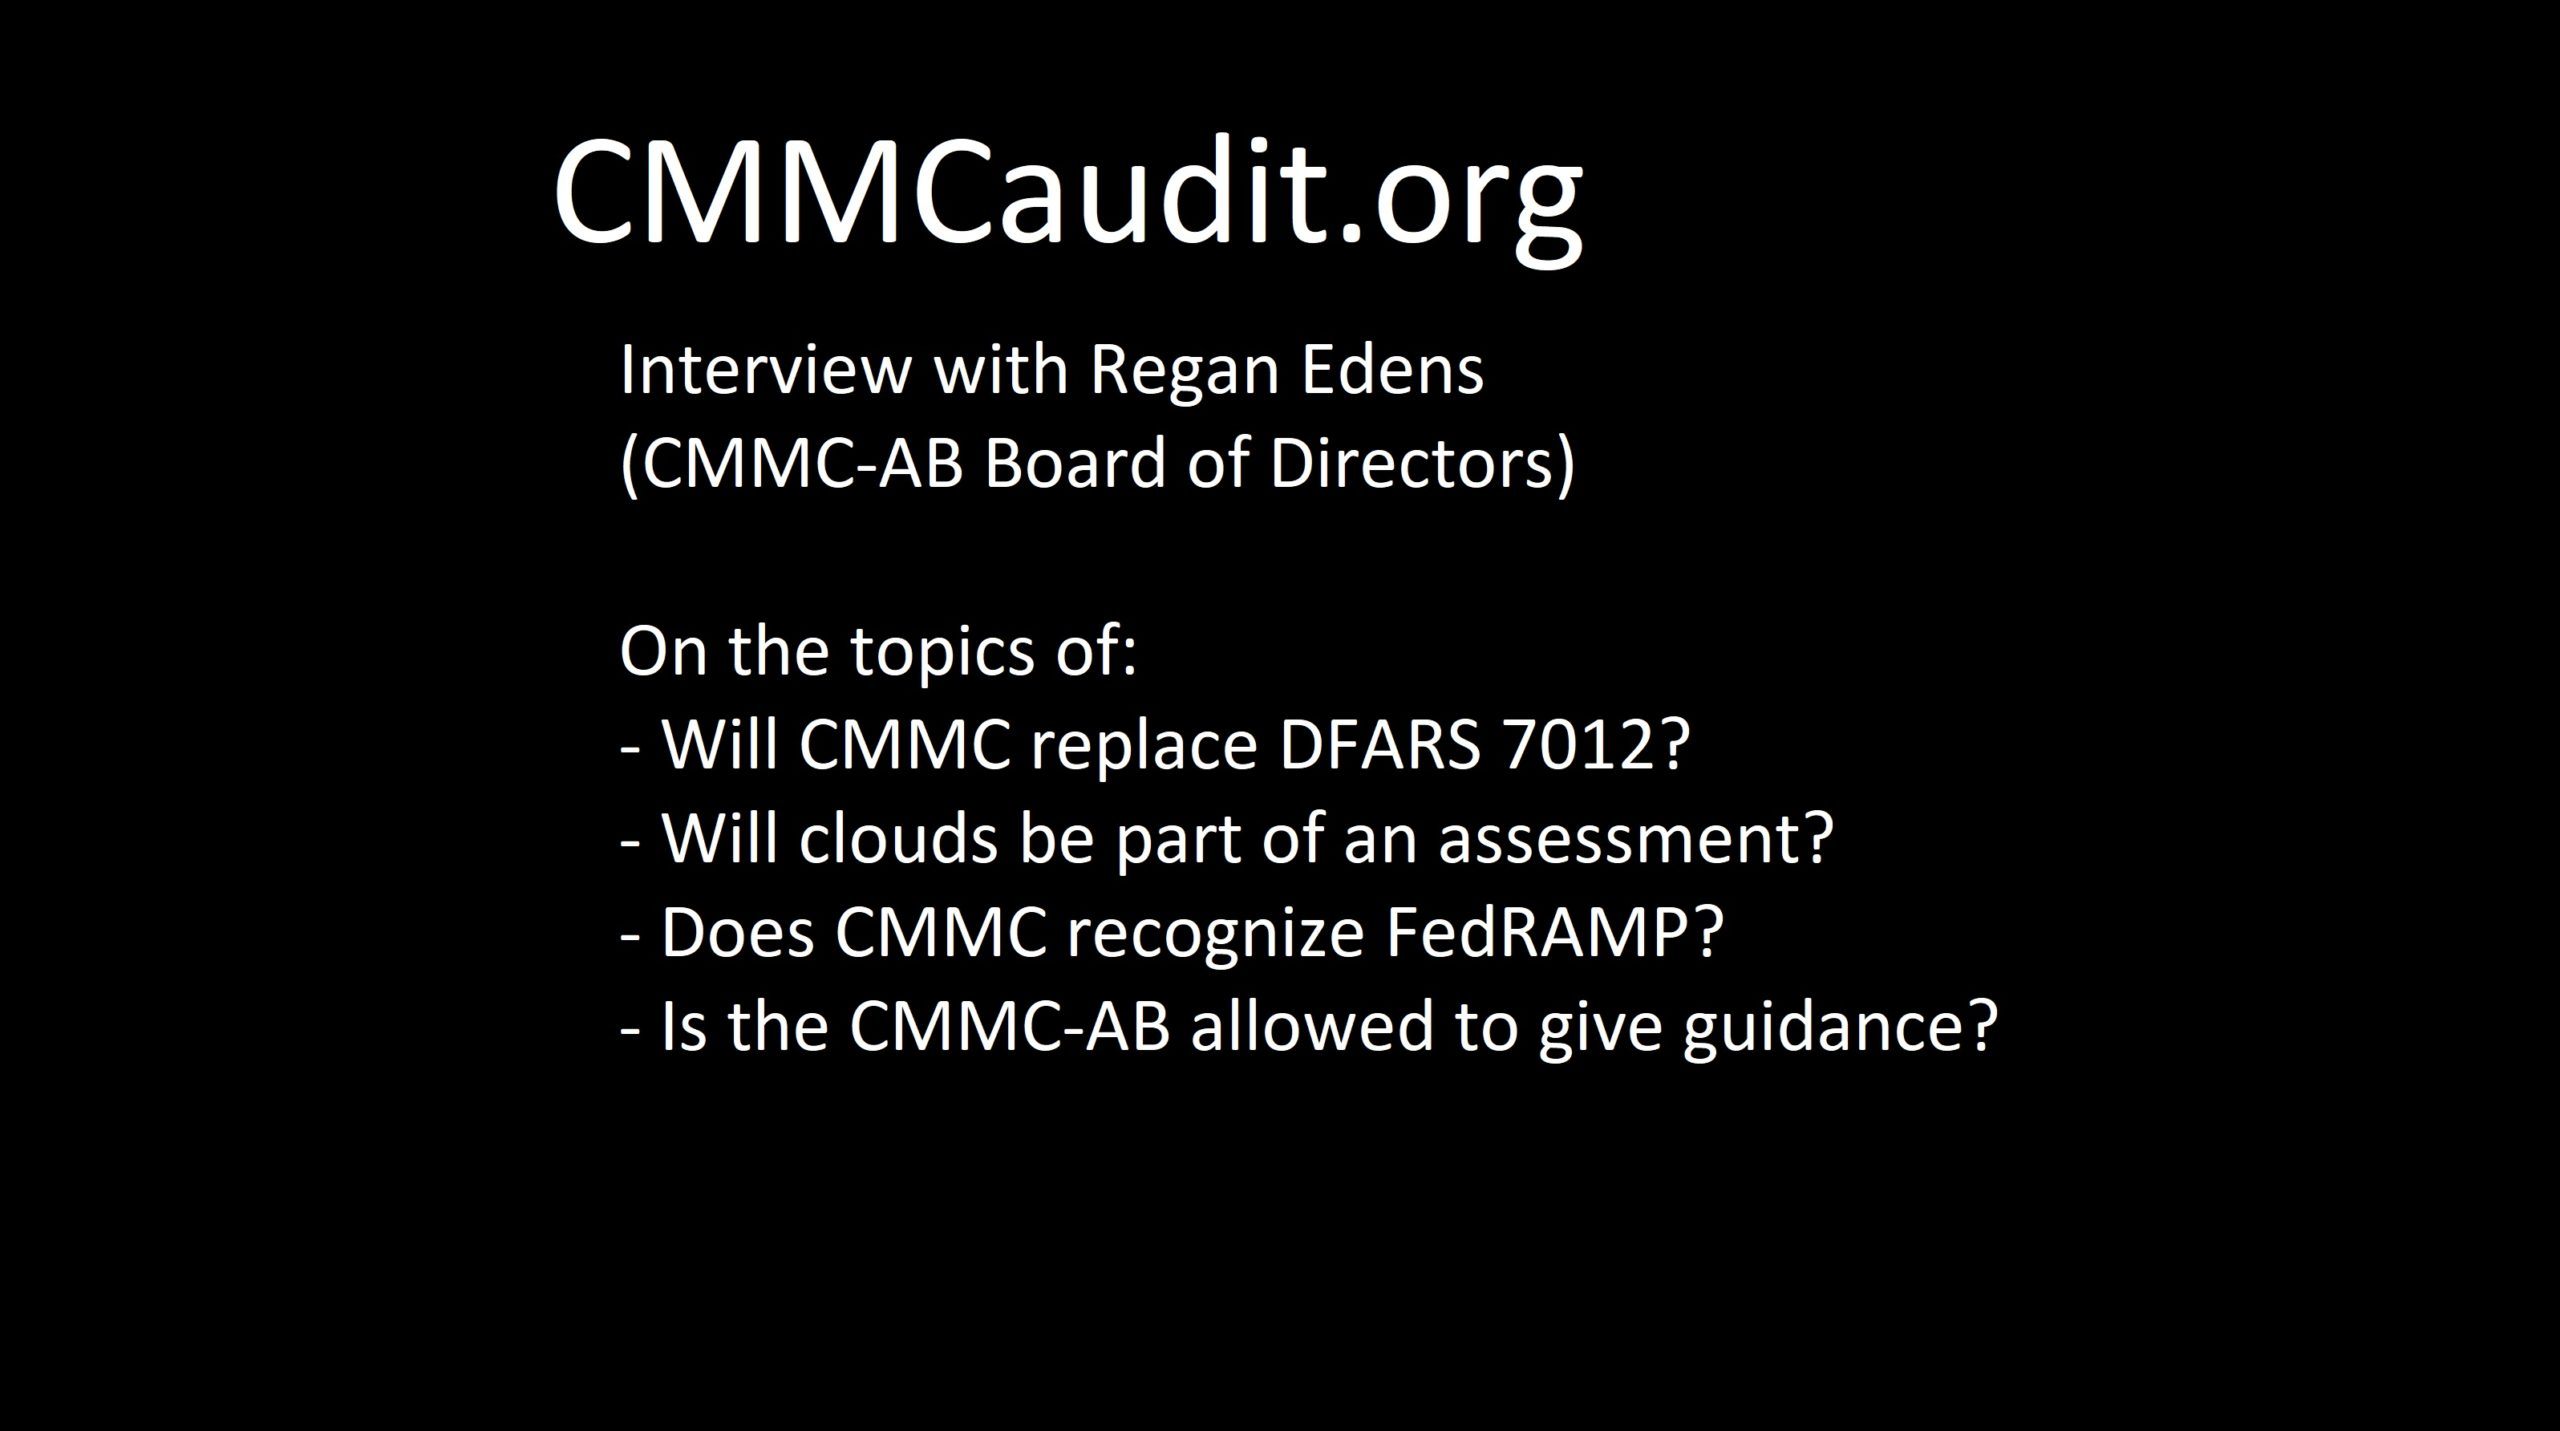 Picture of CMMCaudit.org showing topics that Regan Edens (CMMC-AB Board of Directors) discussed during interview